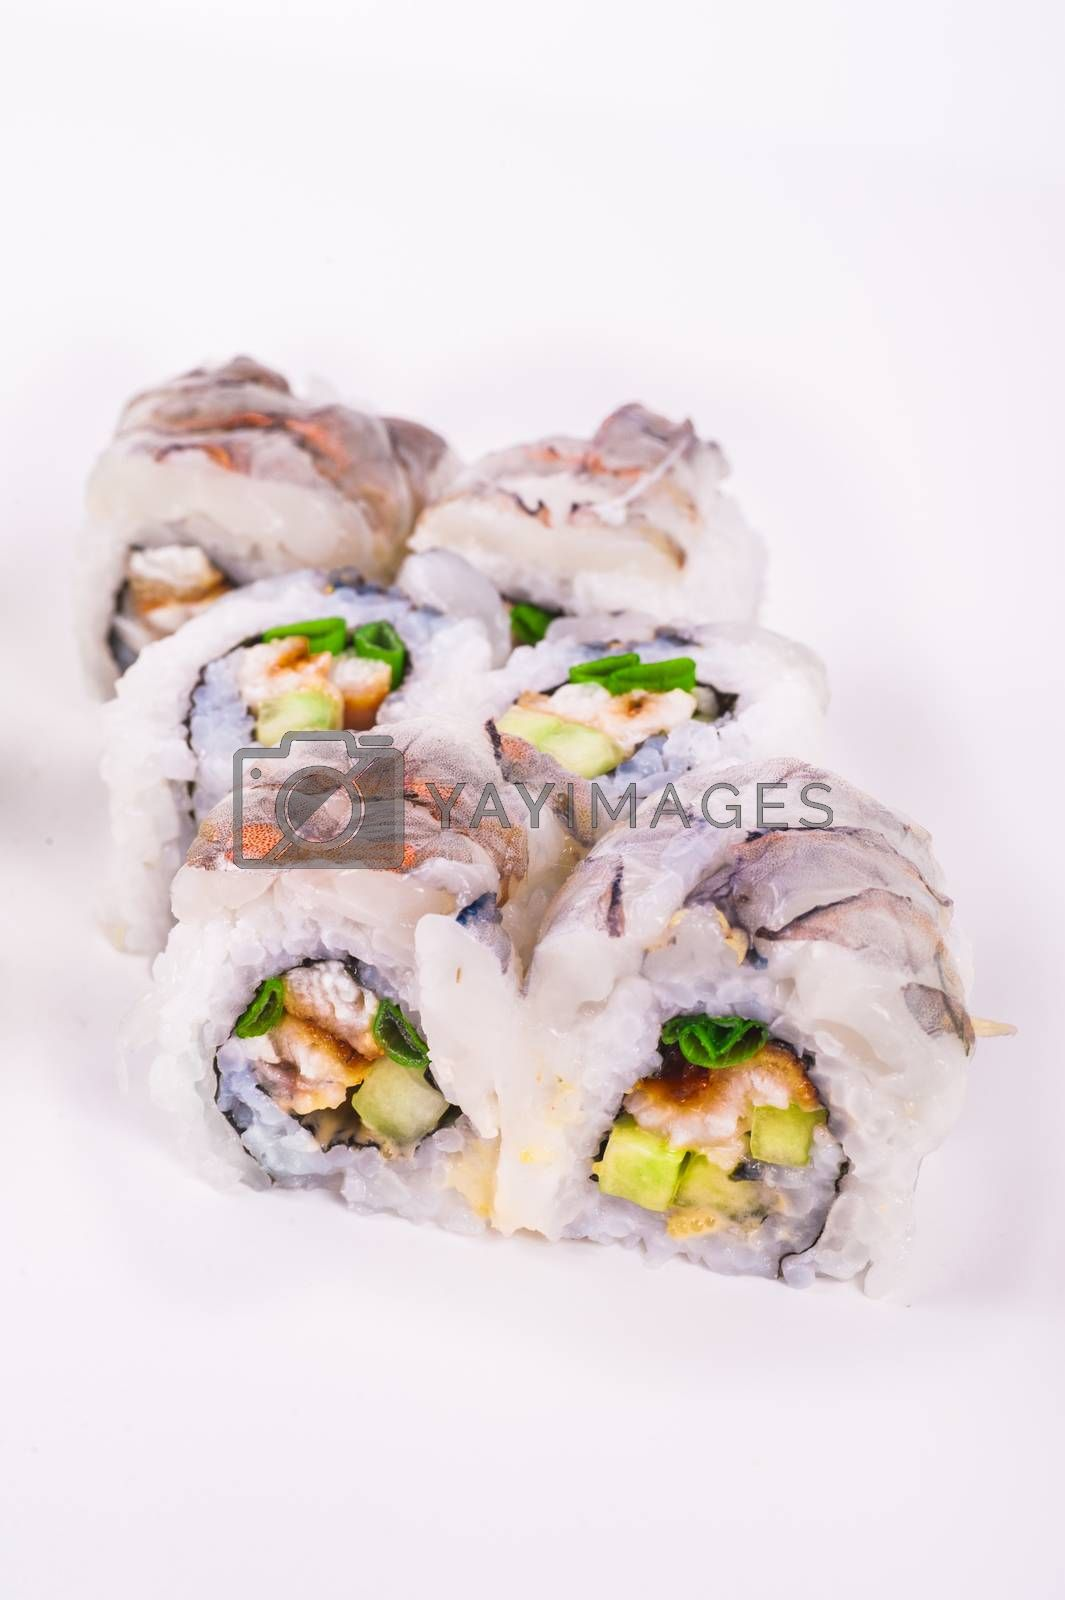 raw prawn sushi roll with eel isolated on white background